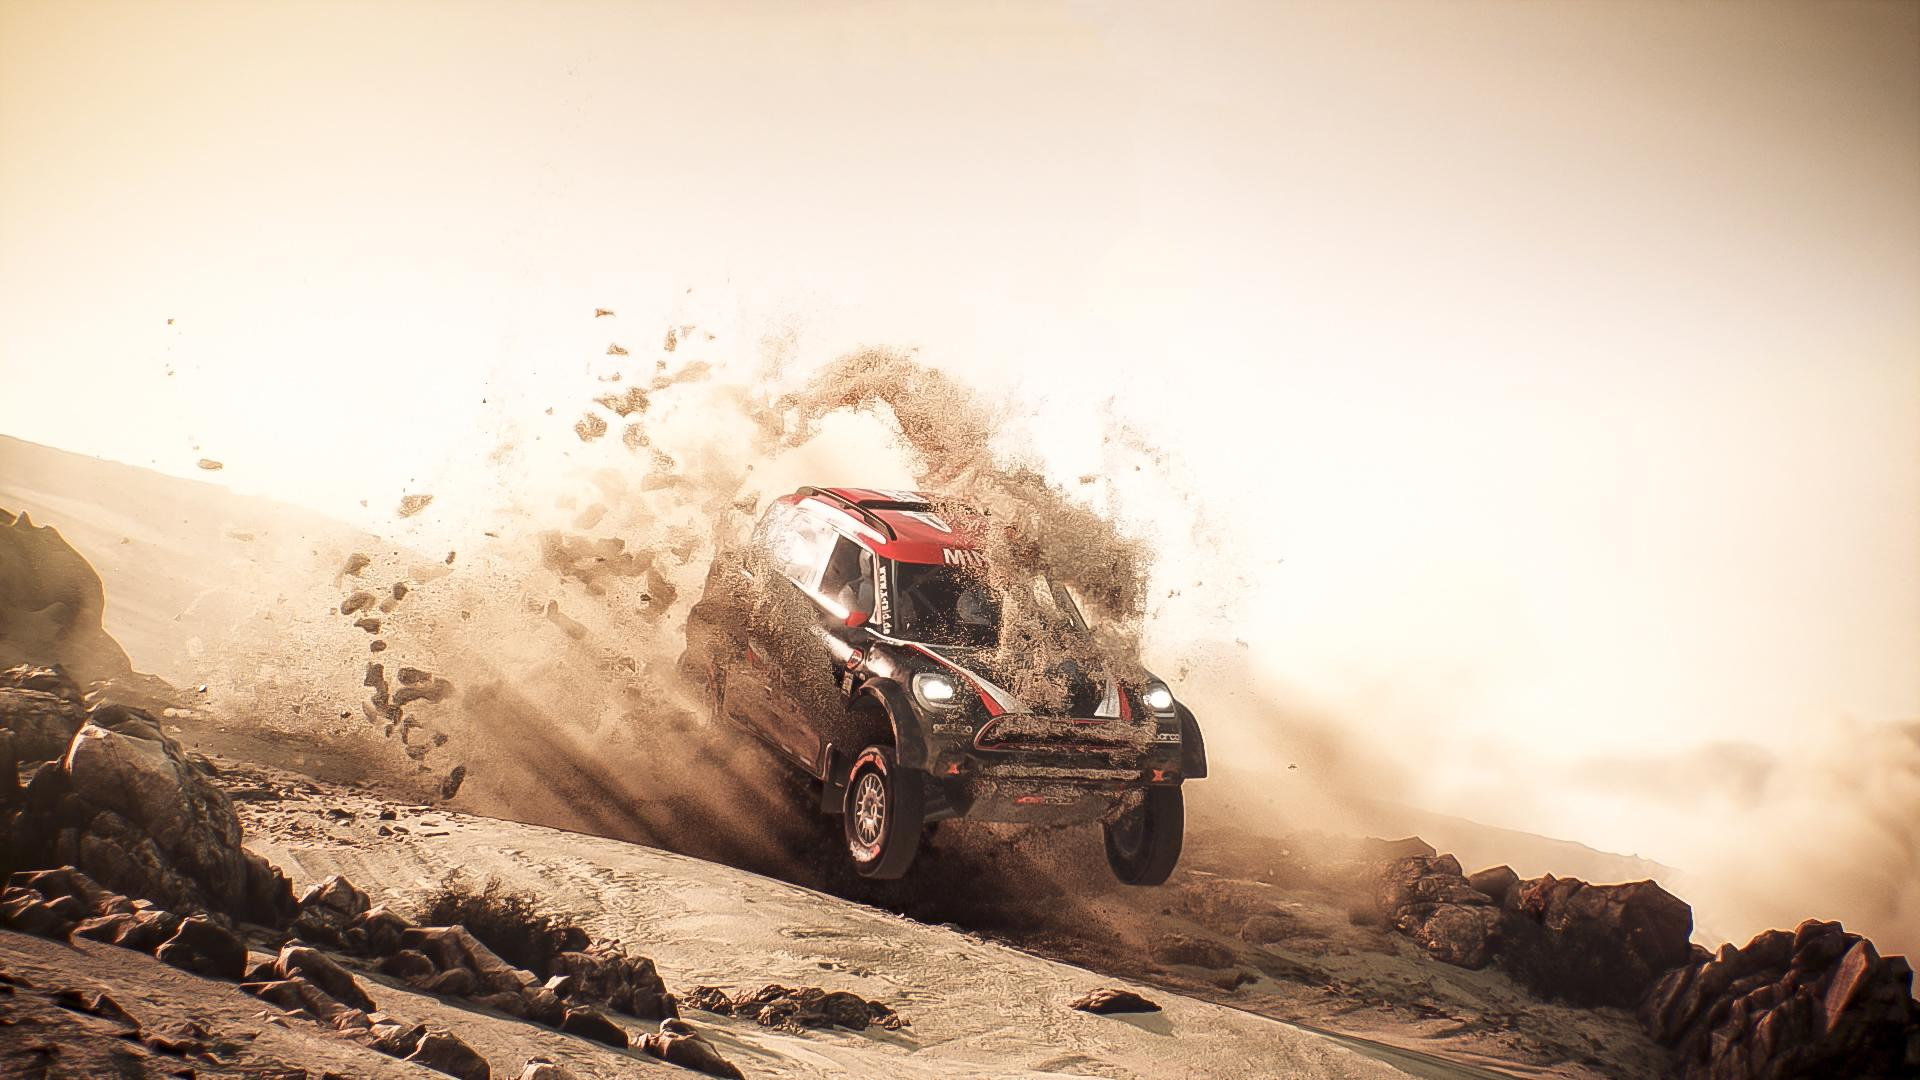 Dakar 18 game screenshot